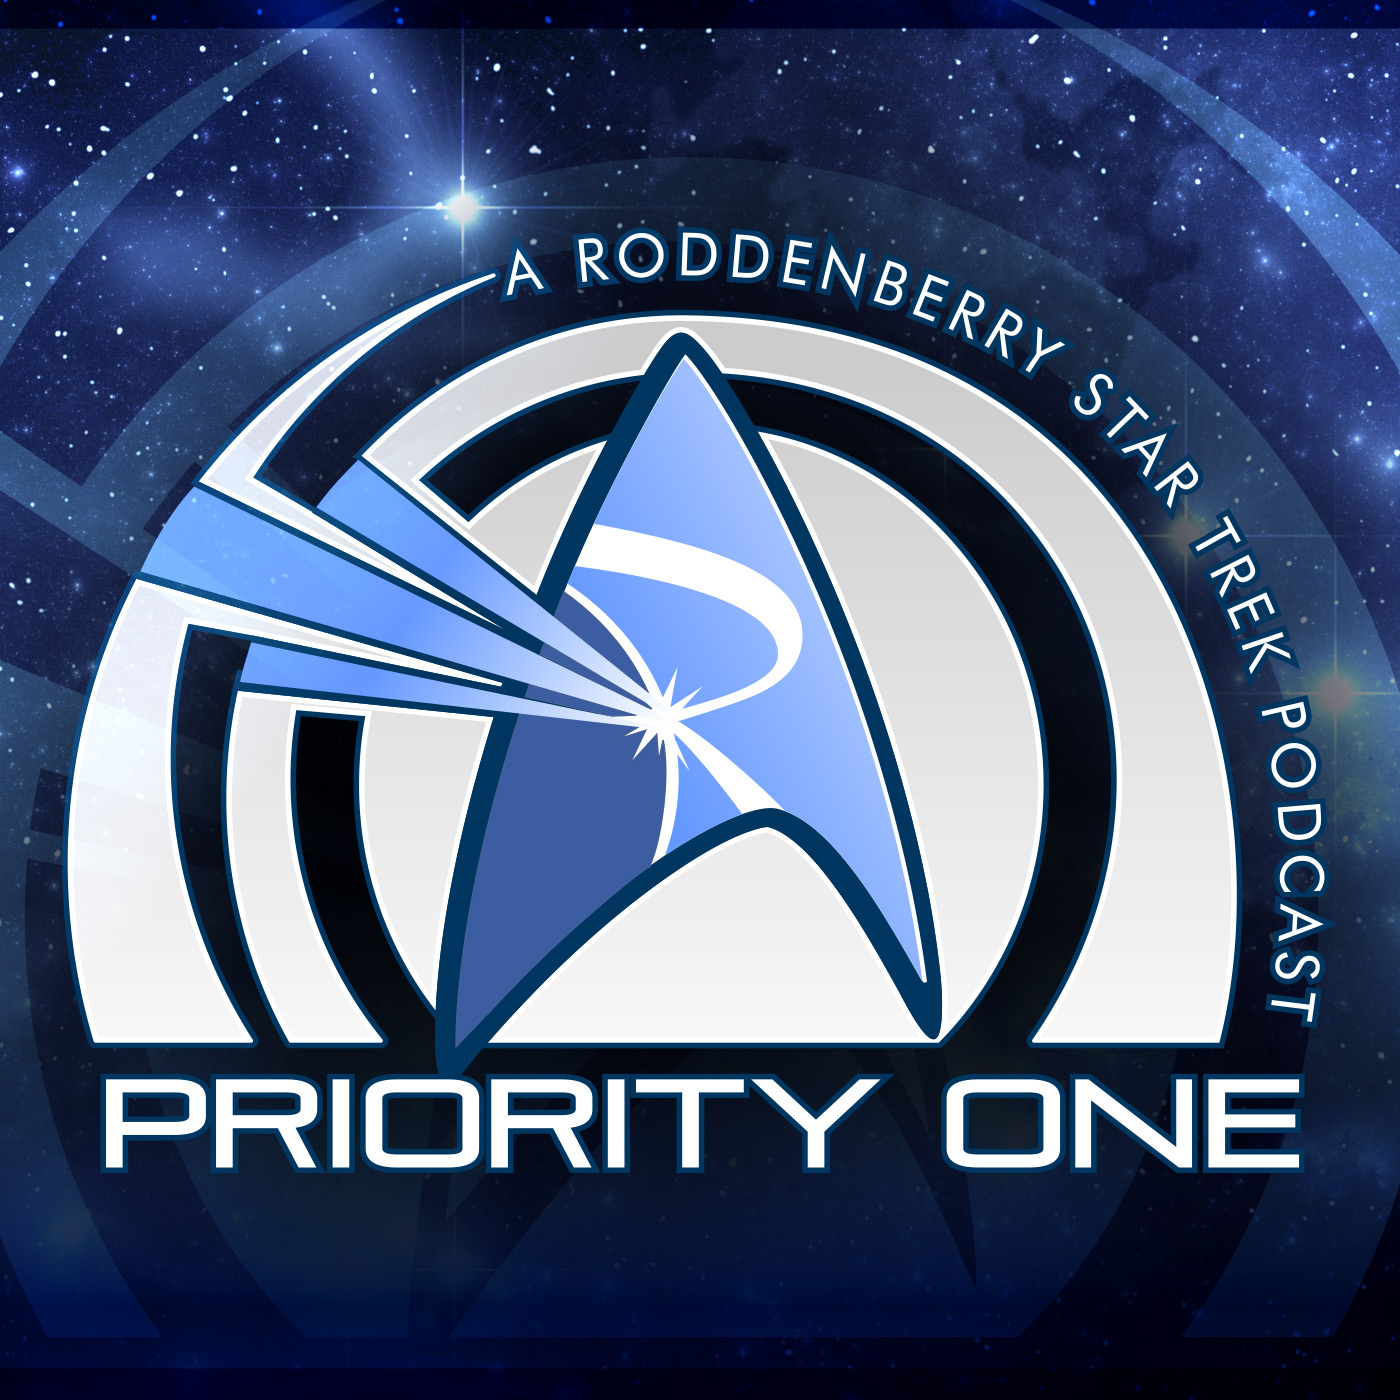 Artwork for 415 - Chateau Picard | Priority One: A Roddenberry Star Trek Podcast